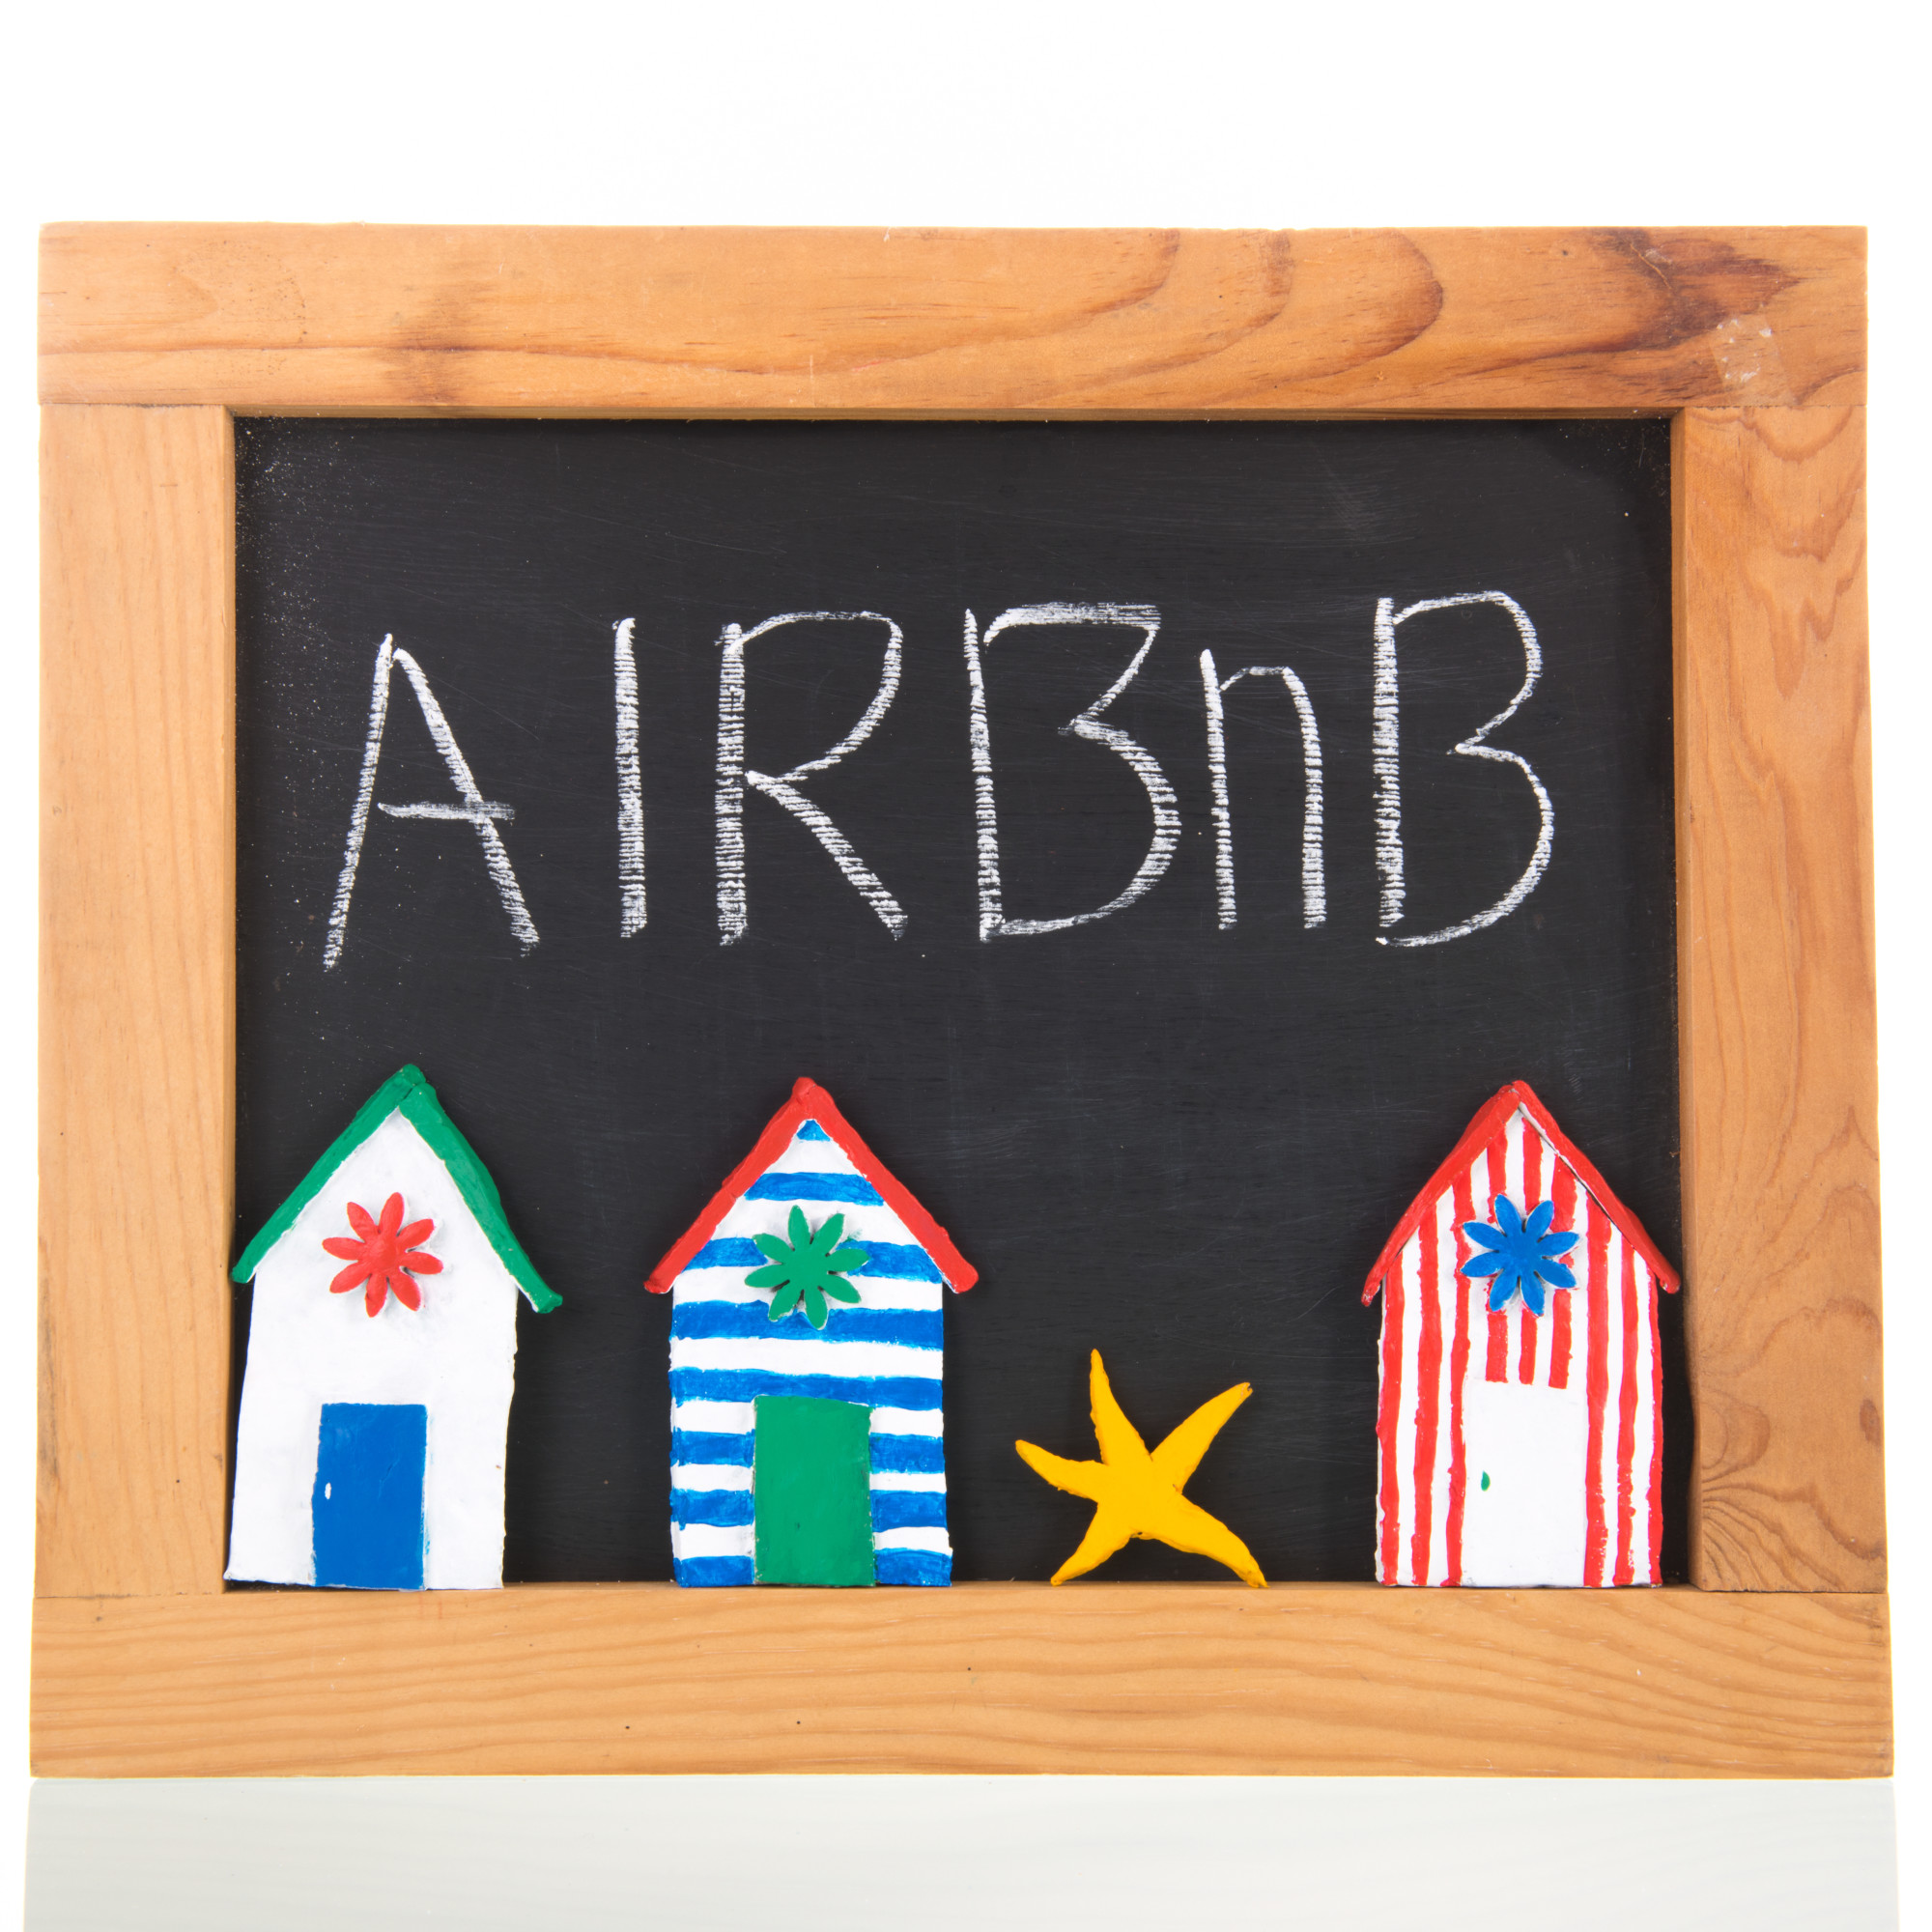 Airbnb services